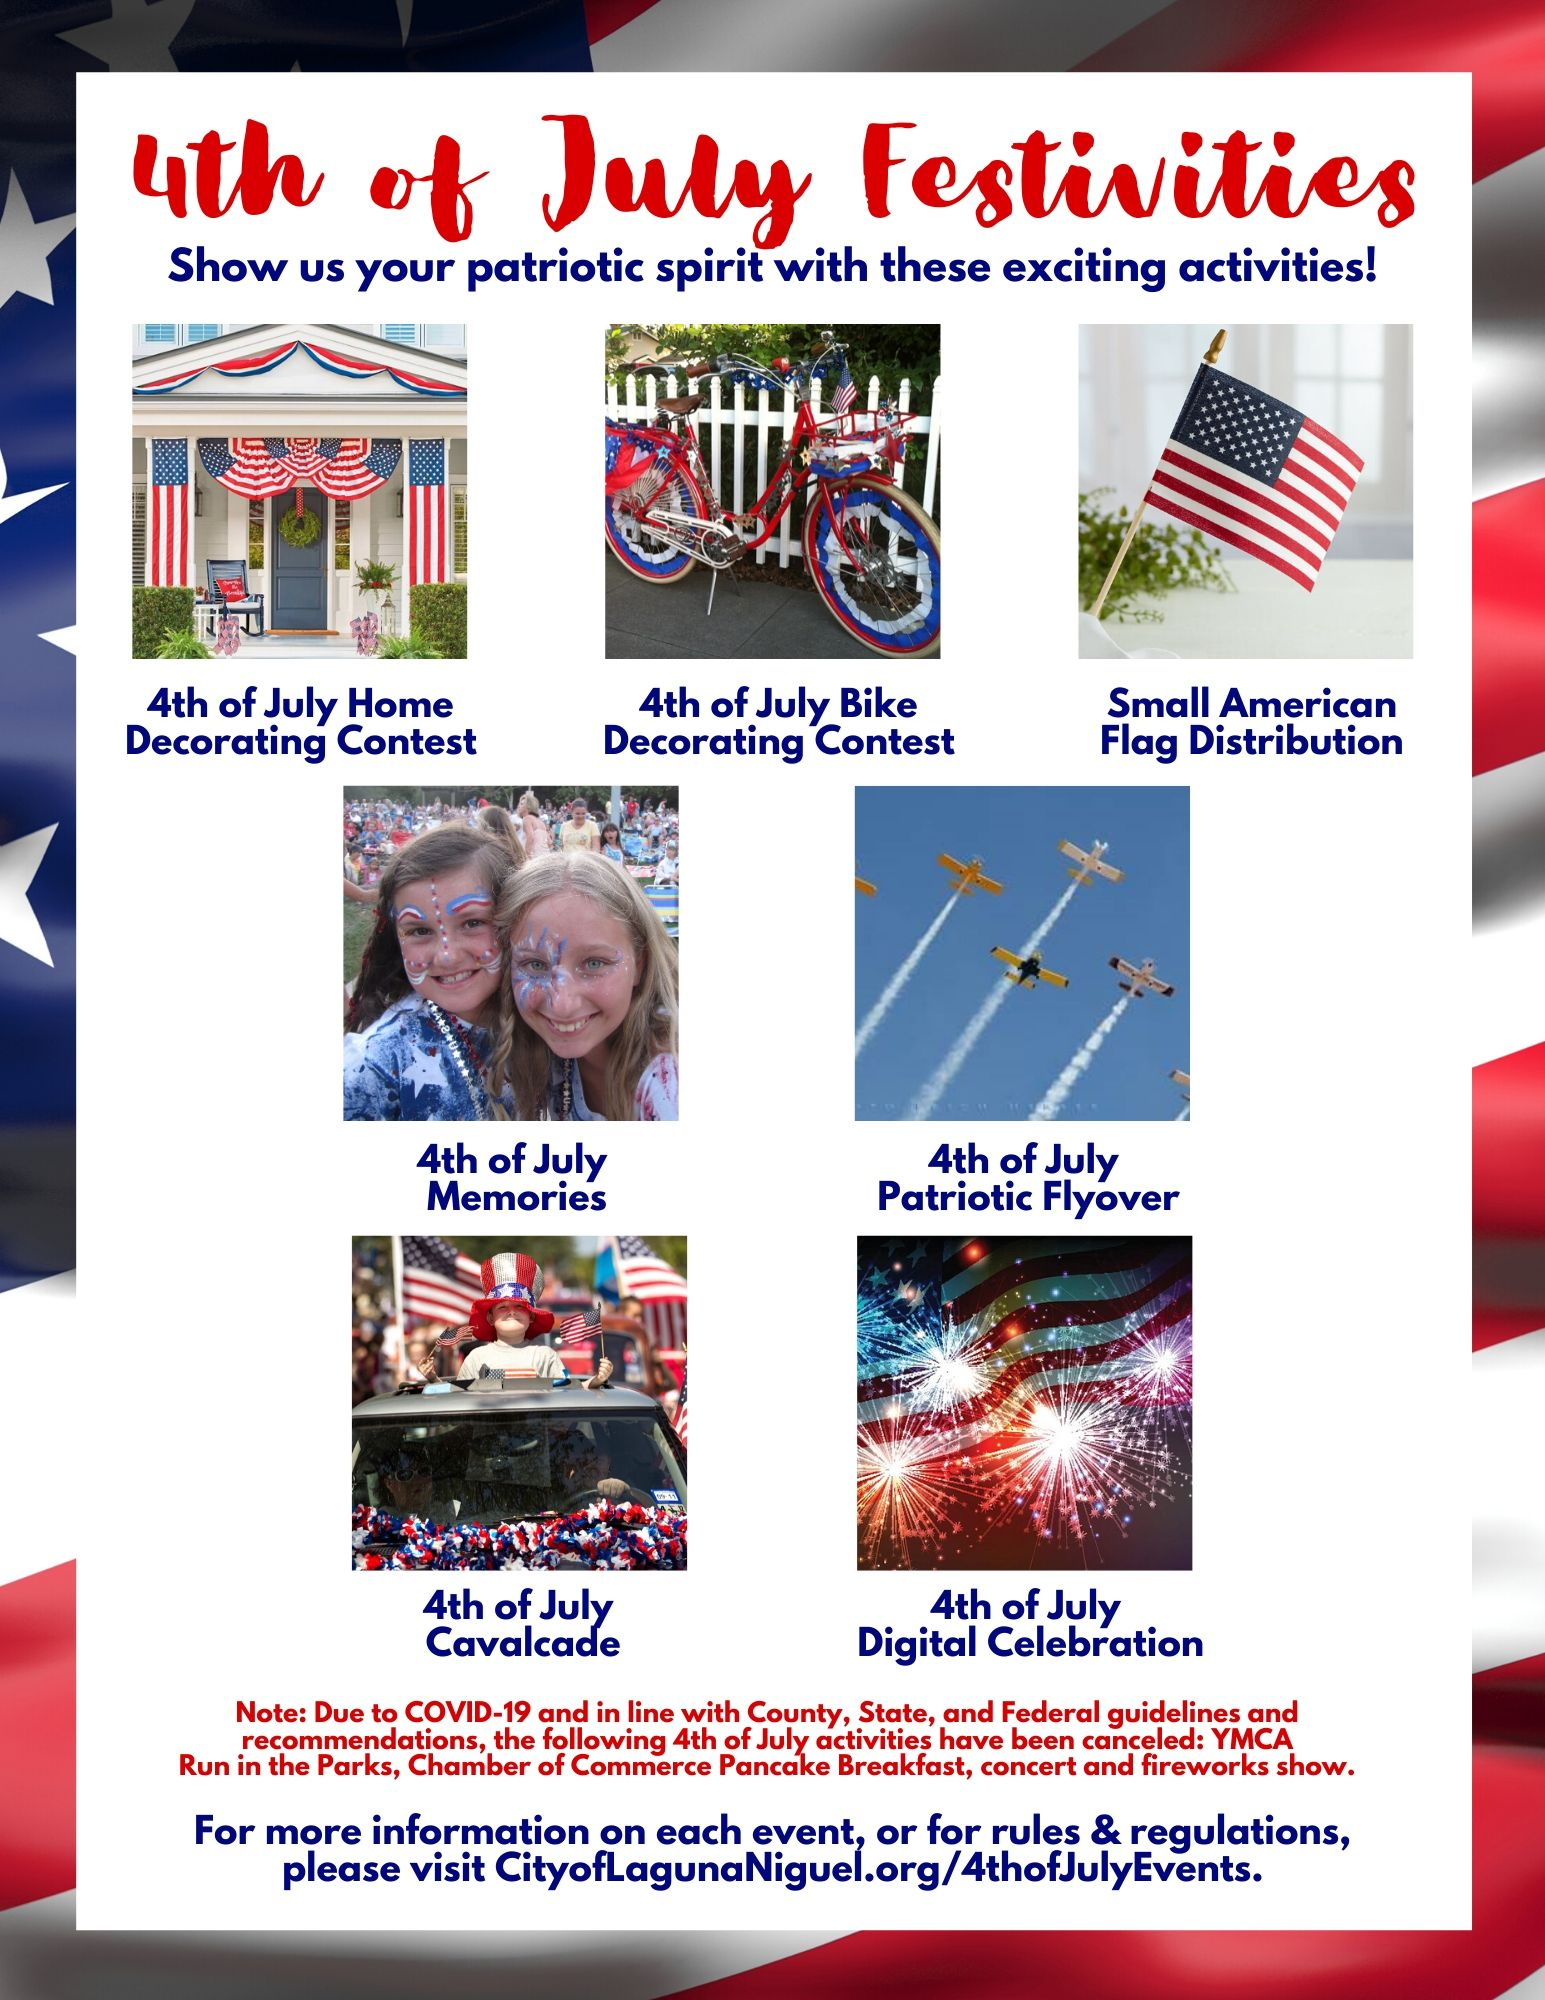 4th of July Festivities Flyer